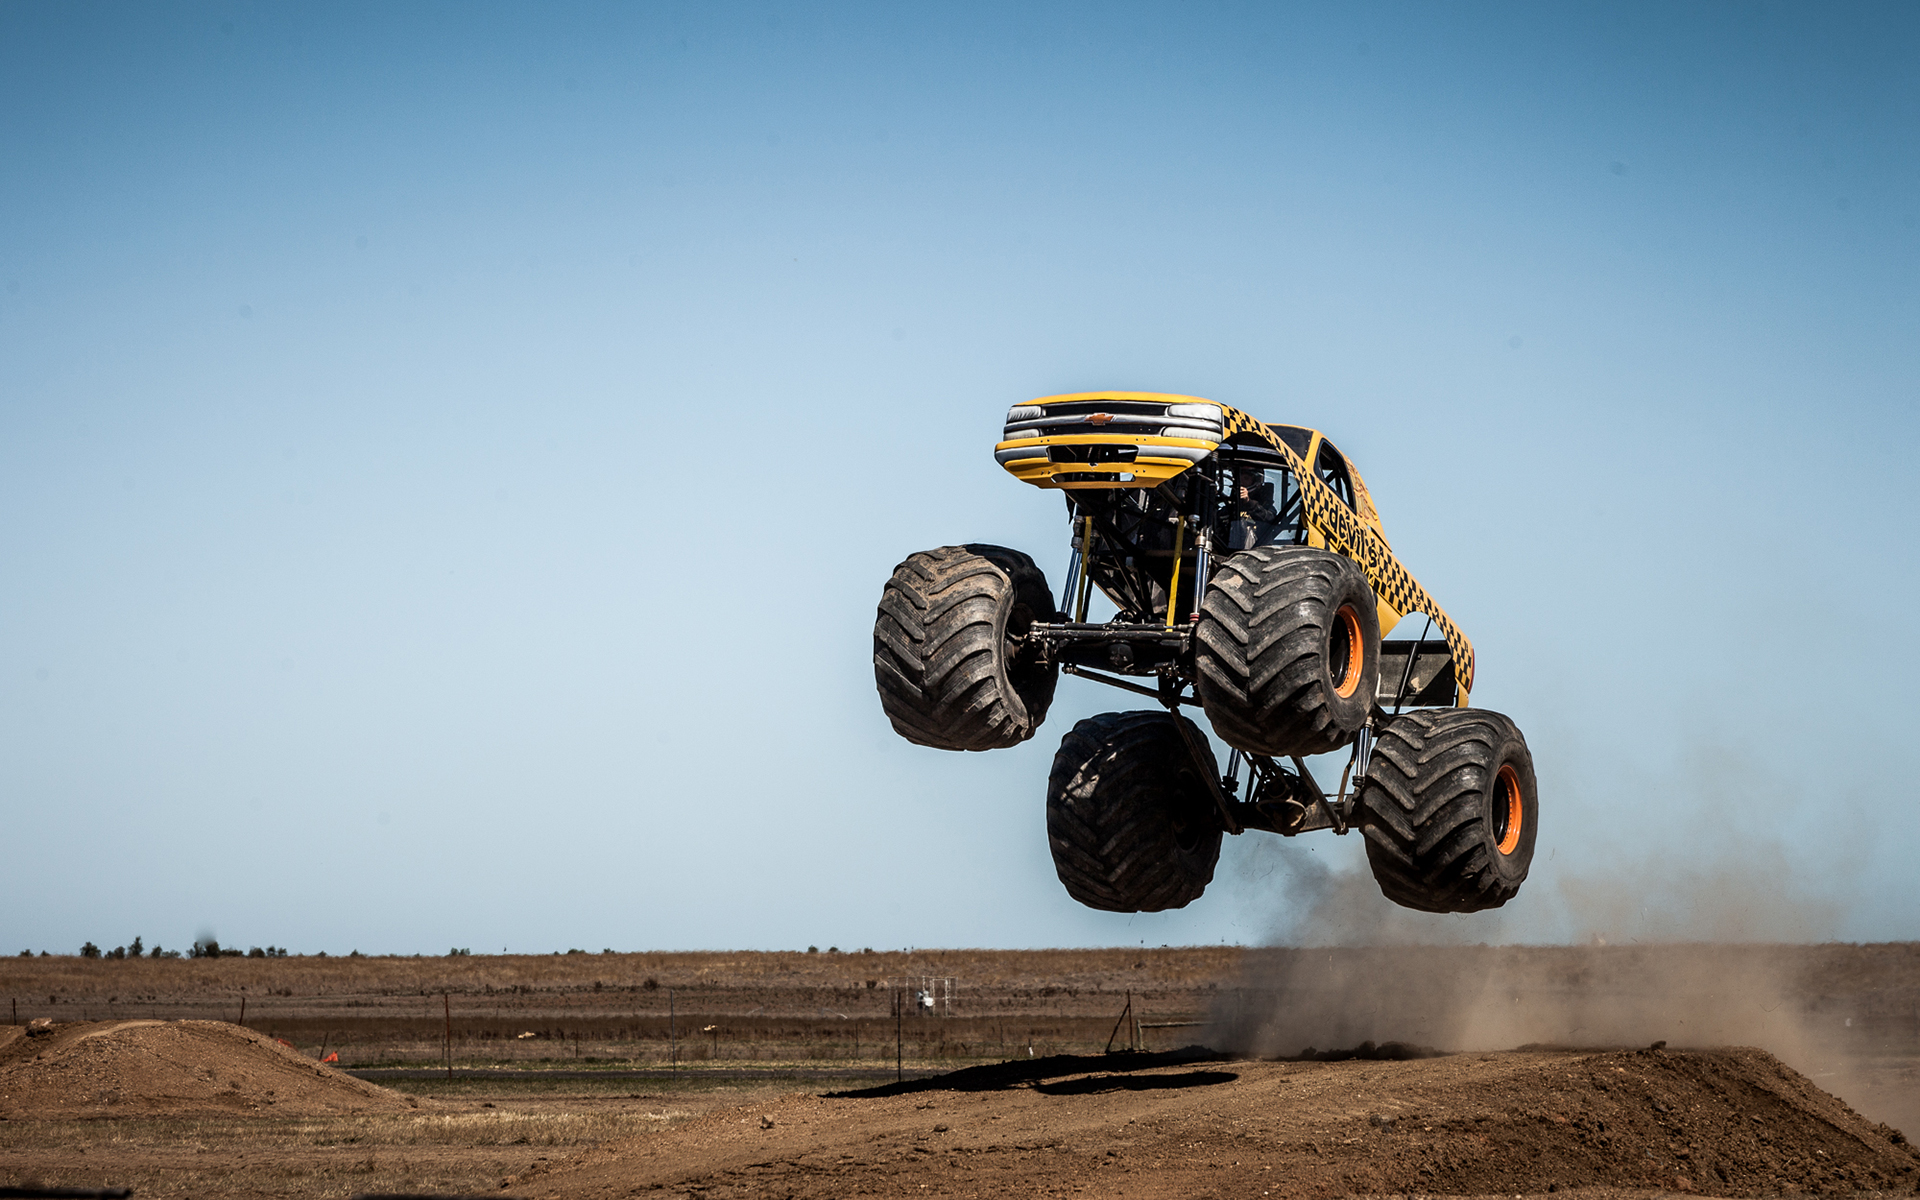 monster truck jump stop action wallpaper 1920x1200